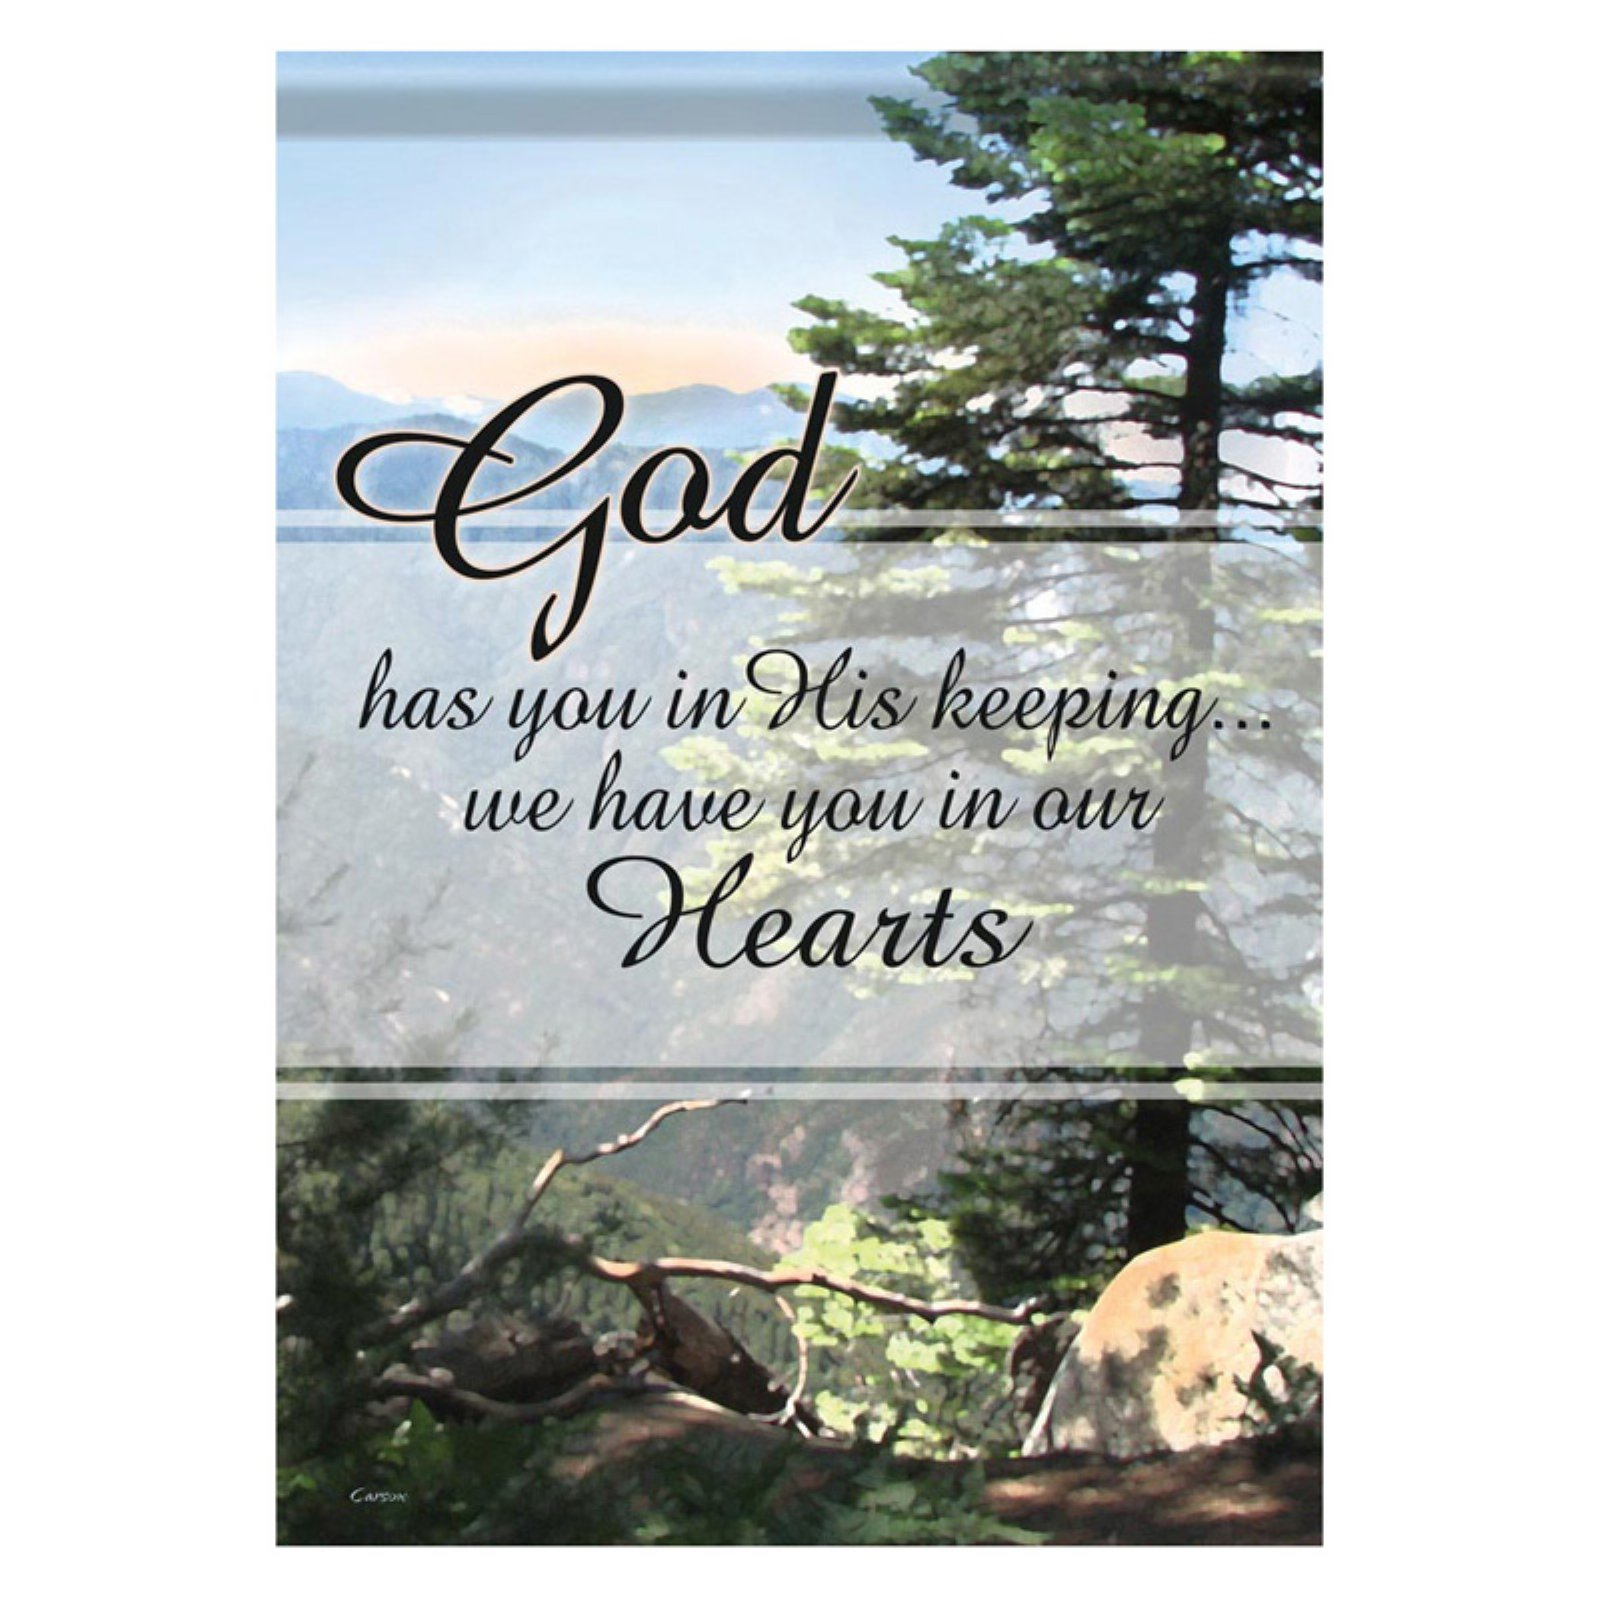 Carson 13 x 18 in. Gods Keeping Garden Flag